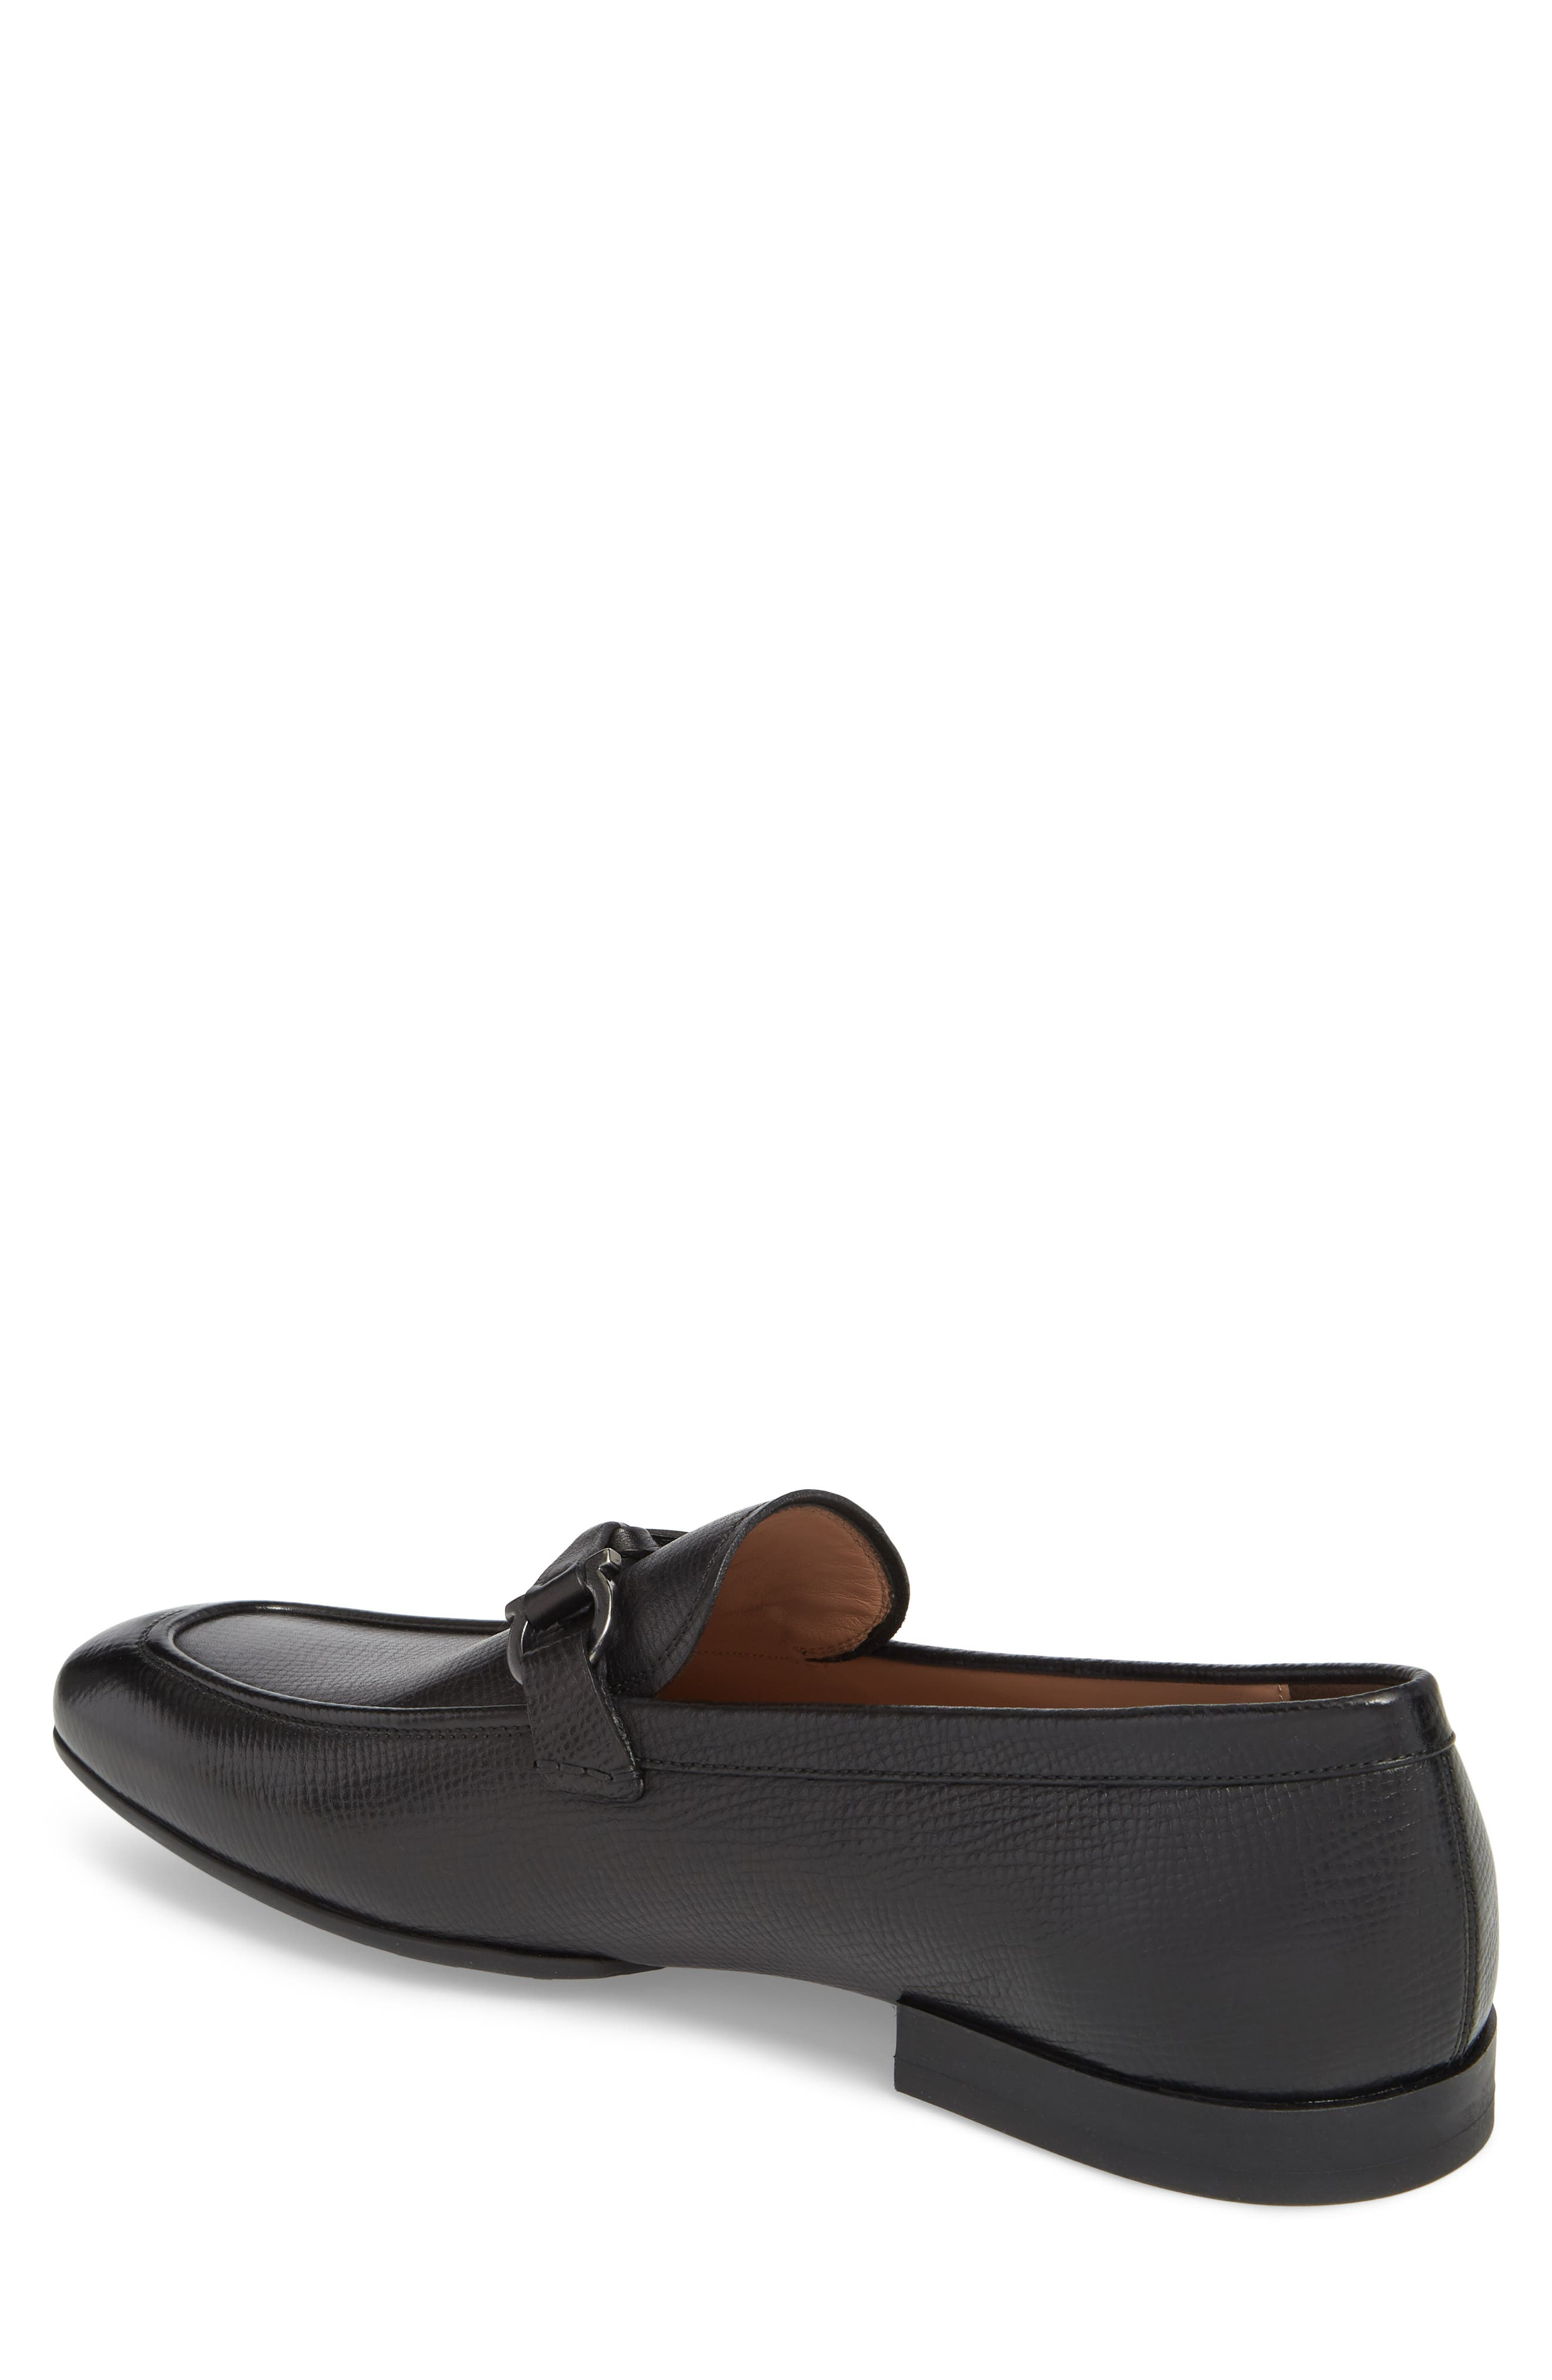 Barry Looped Bit Loafer,                             Alternate thumbnail 2, color,                             NERO LEATHER